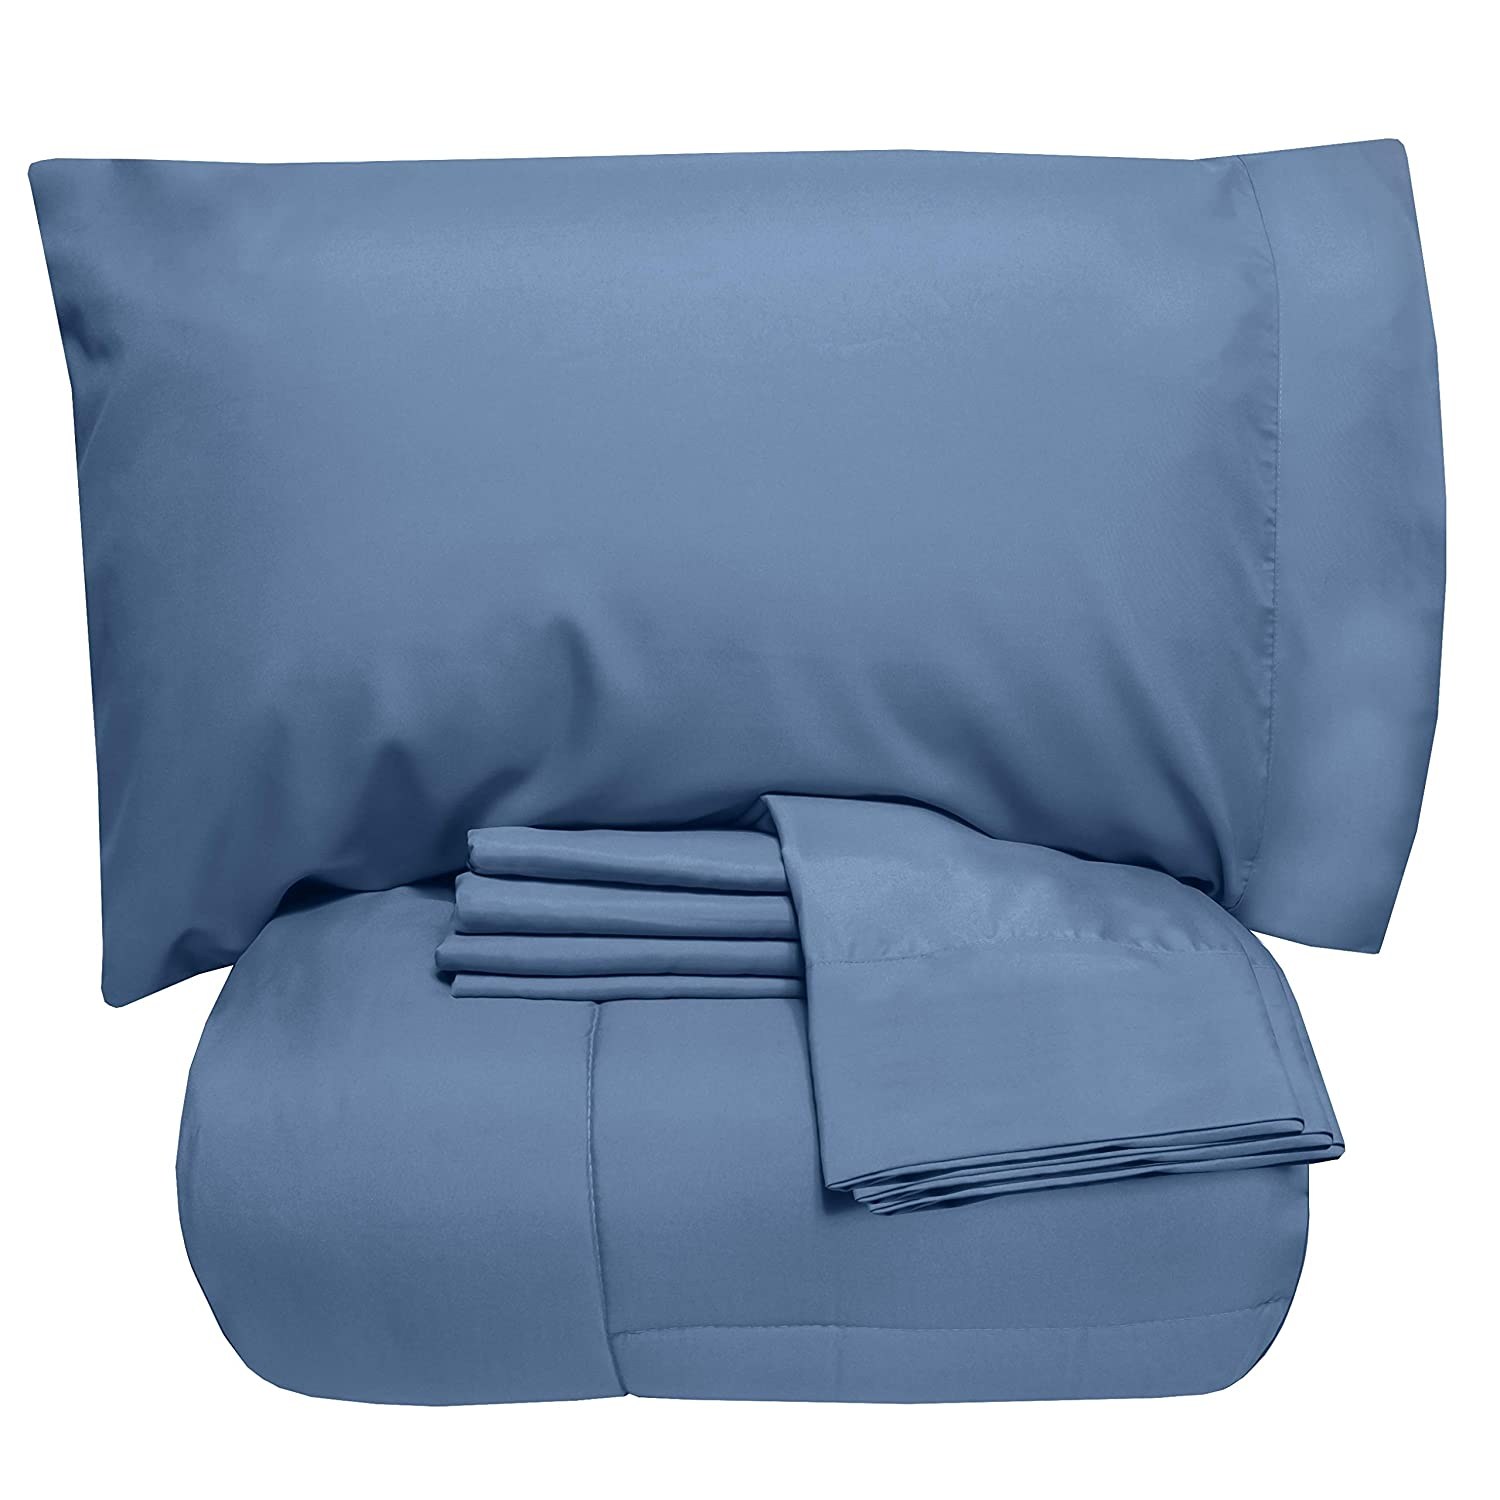 Sweet Home Collection 7 Piece Comforter Set Bag Solid Color All Season Soft Down Alternative Blanket & Luxurious Microfiber Bed Sheets Full Denim